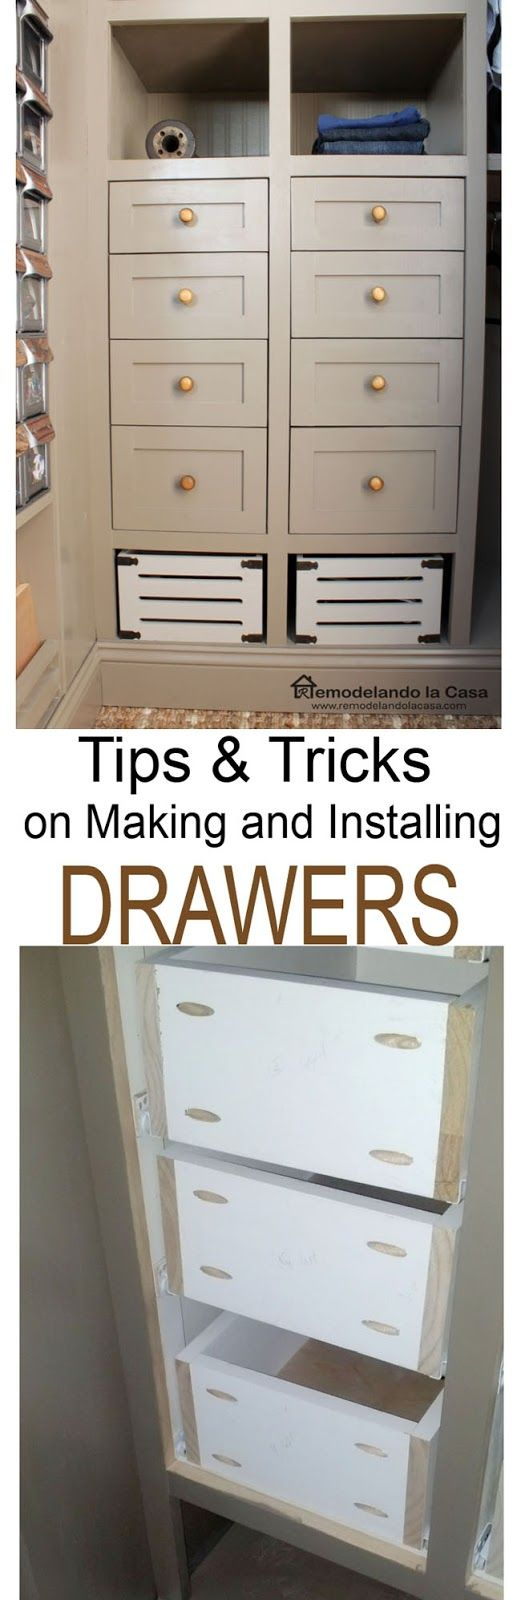 Making and installing drawers Very good info